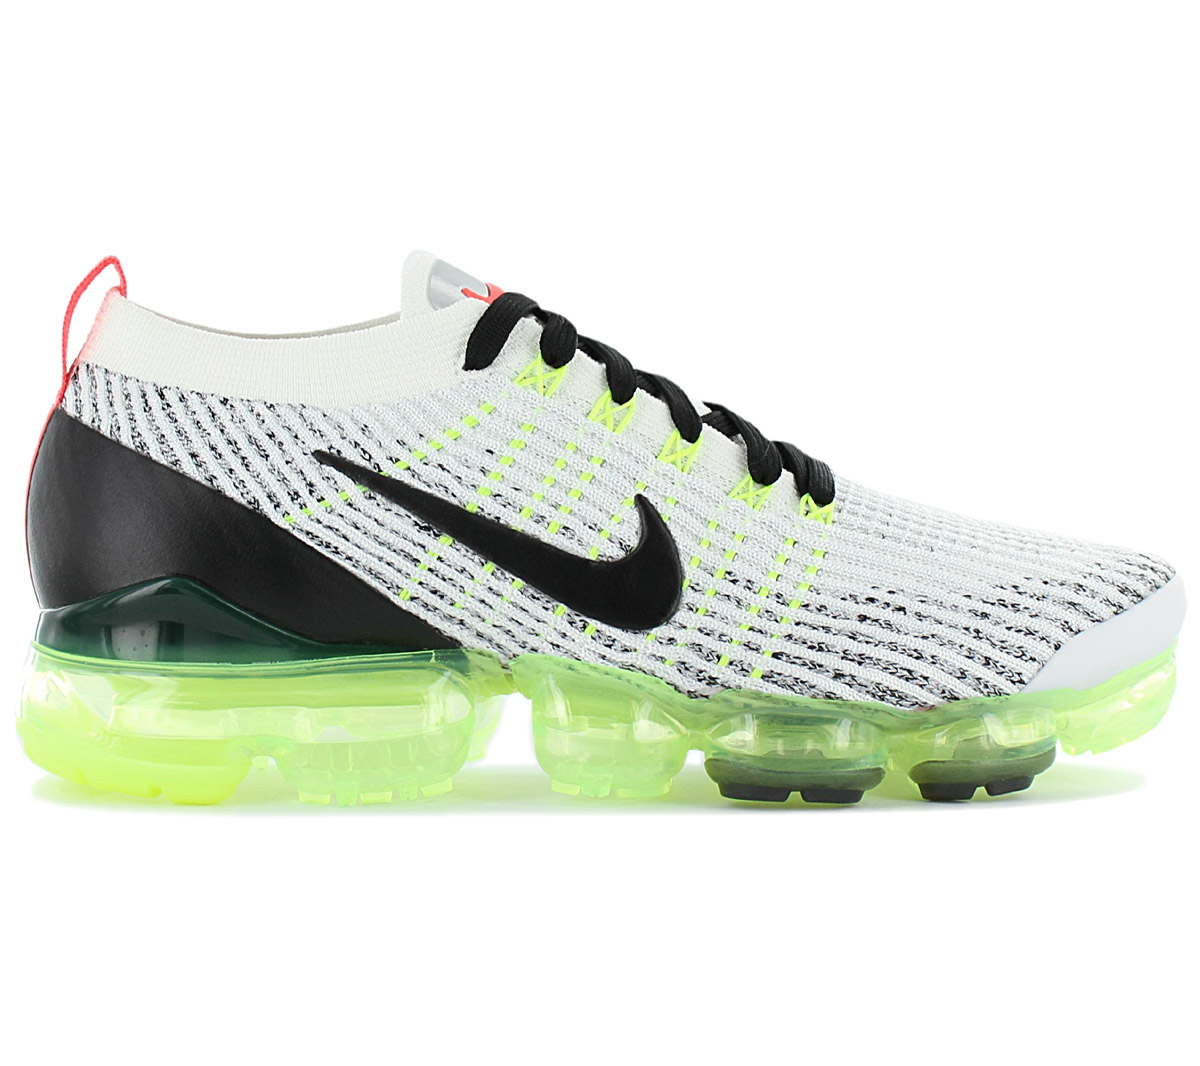 Details about Nike Air Vapormax Flyknit 3 Mens Trainer AJ6900 100 White Shoes Sport Footwear New show original title